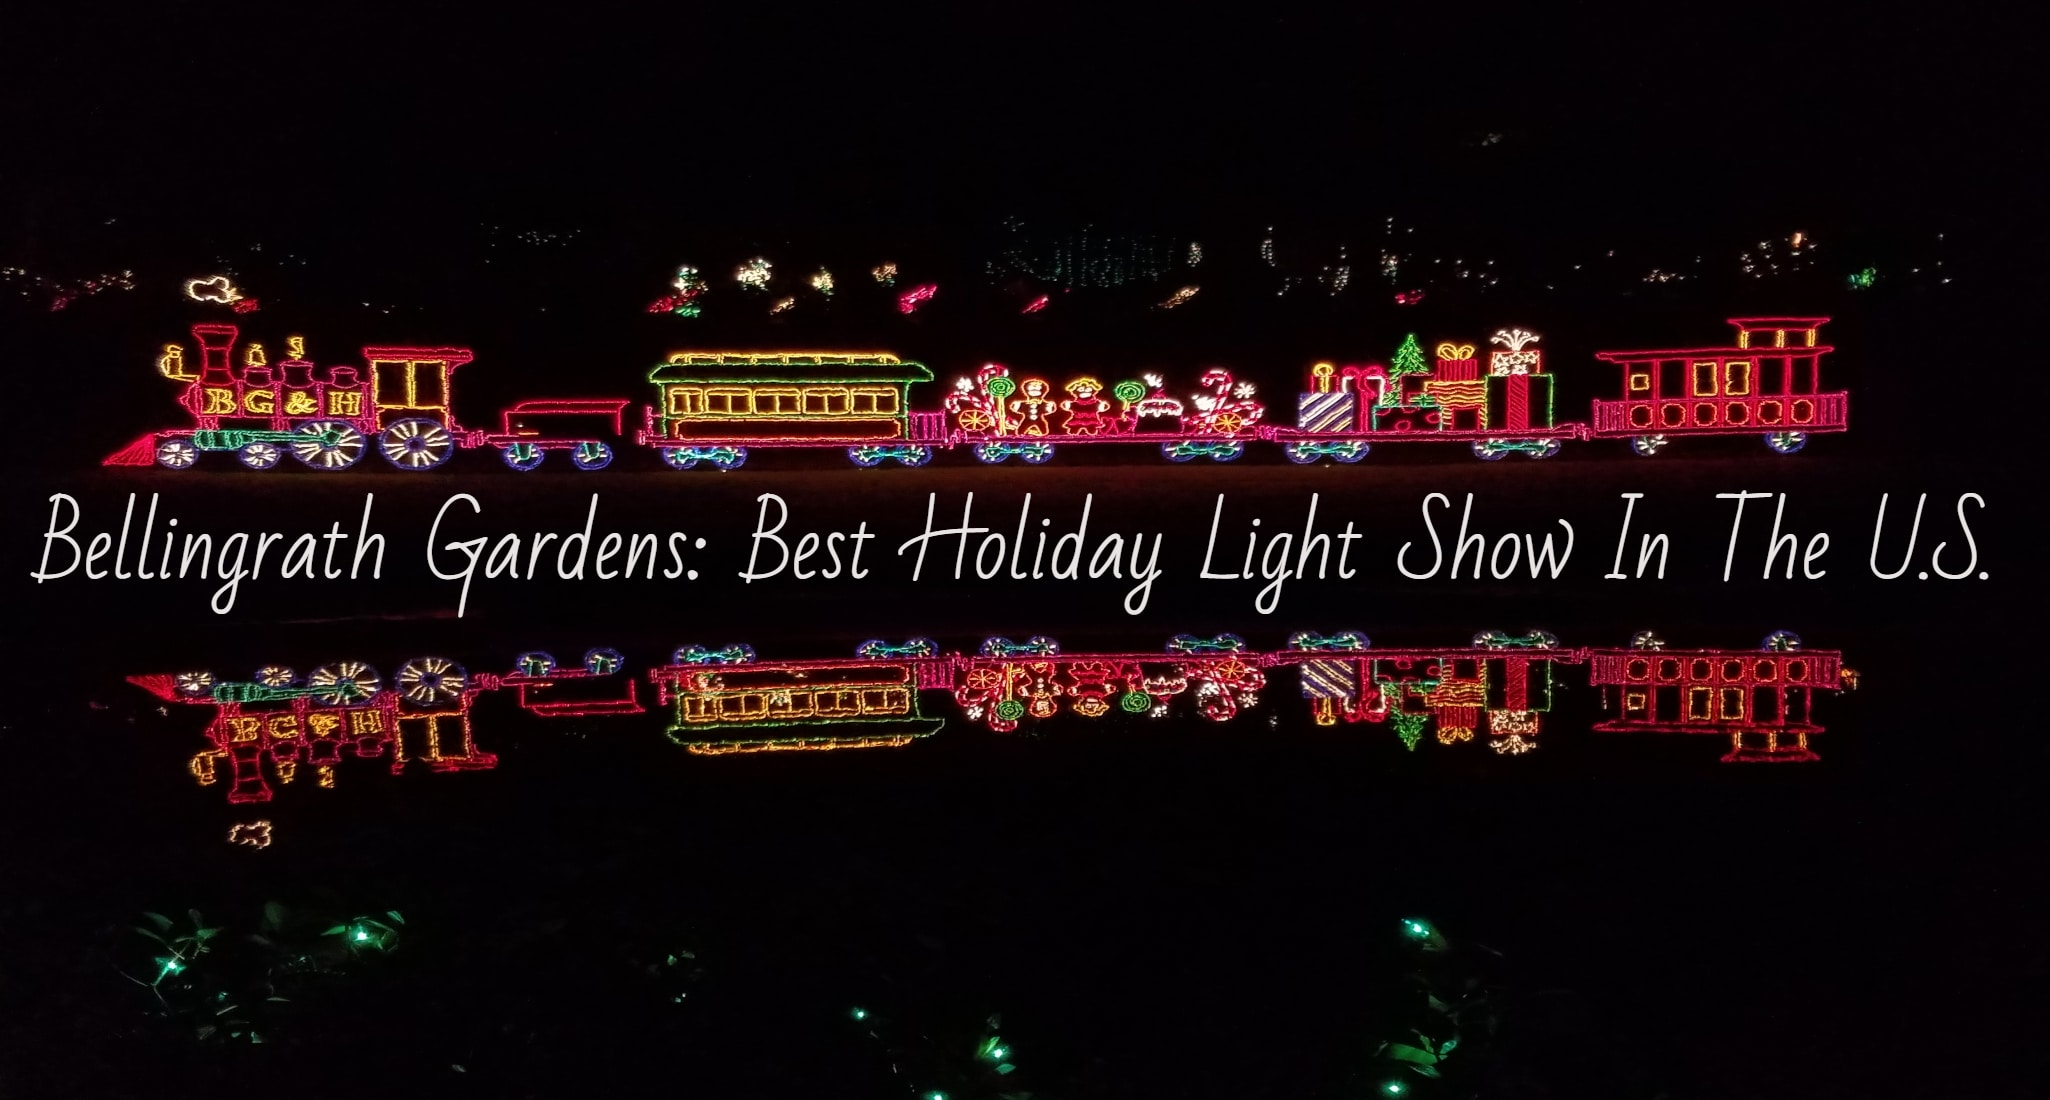 The Best Holiday Light Show In The United States: Bellingrath Gardens & Home